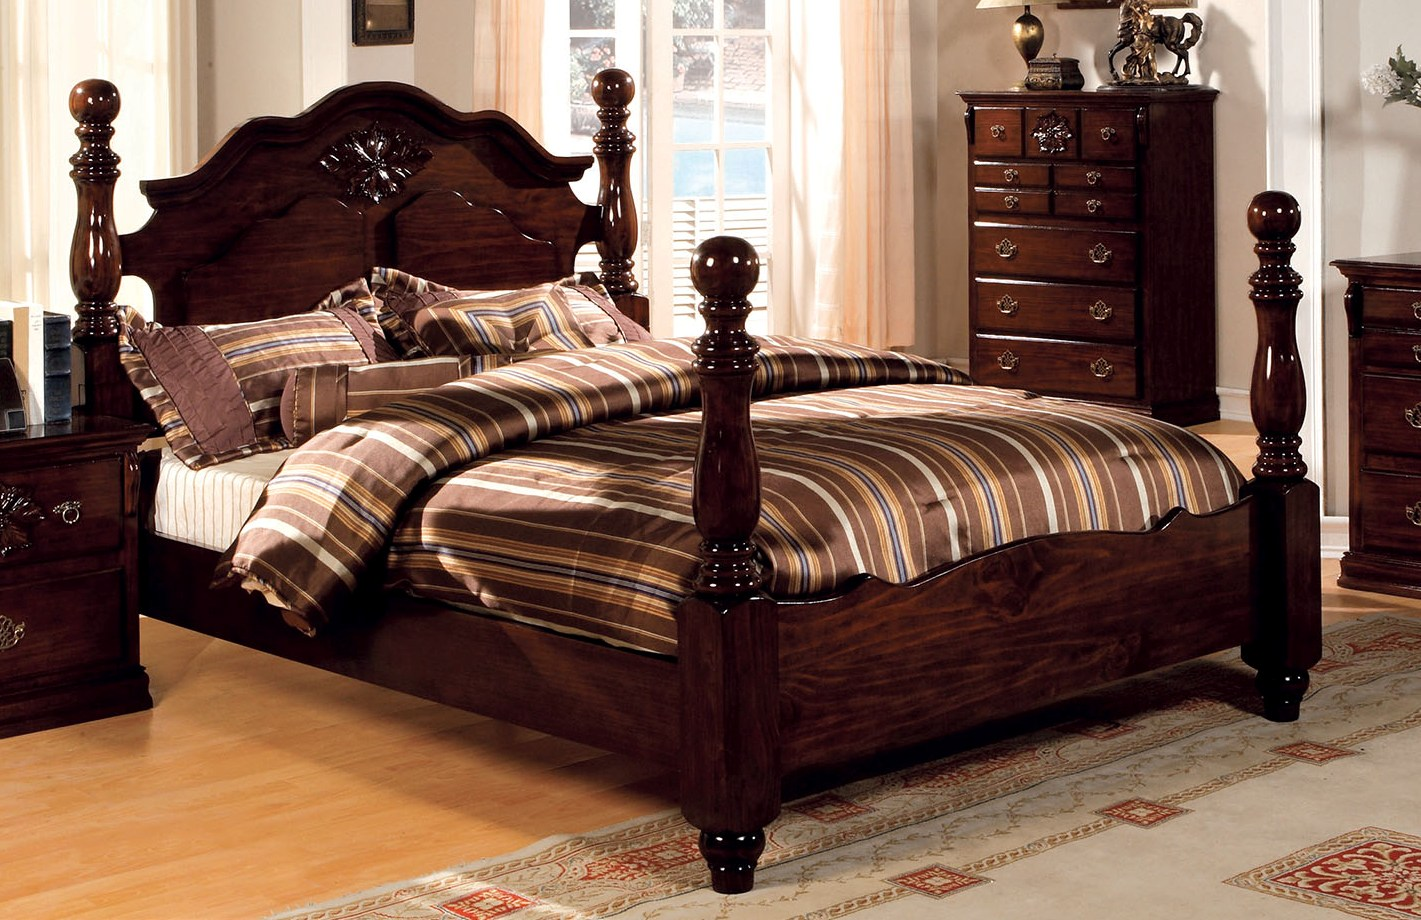 Furniture of america tuscan ii queen bed the classy home for Furniture of america bed reviews